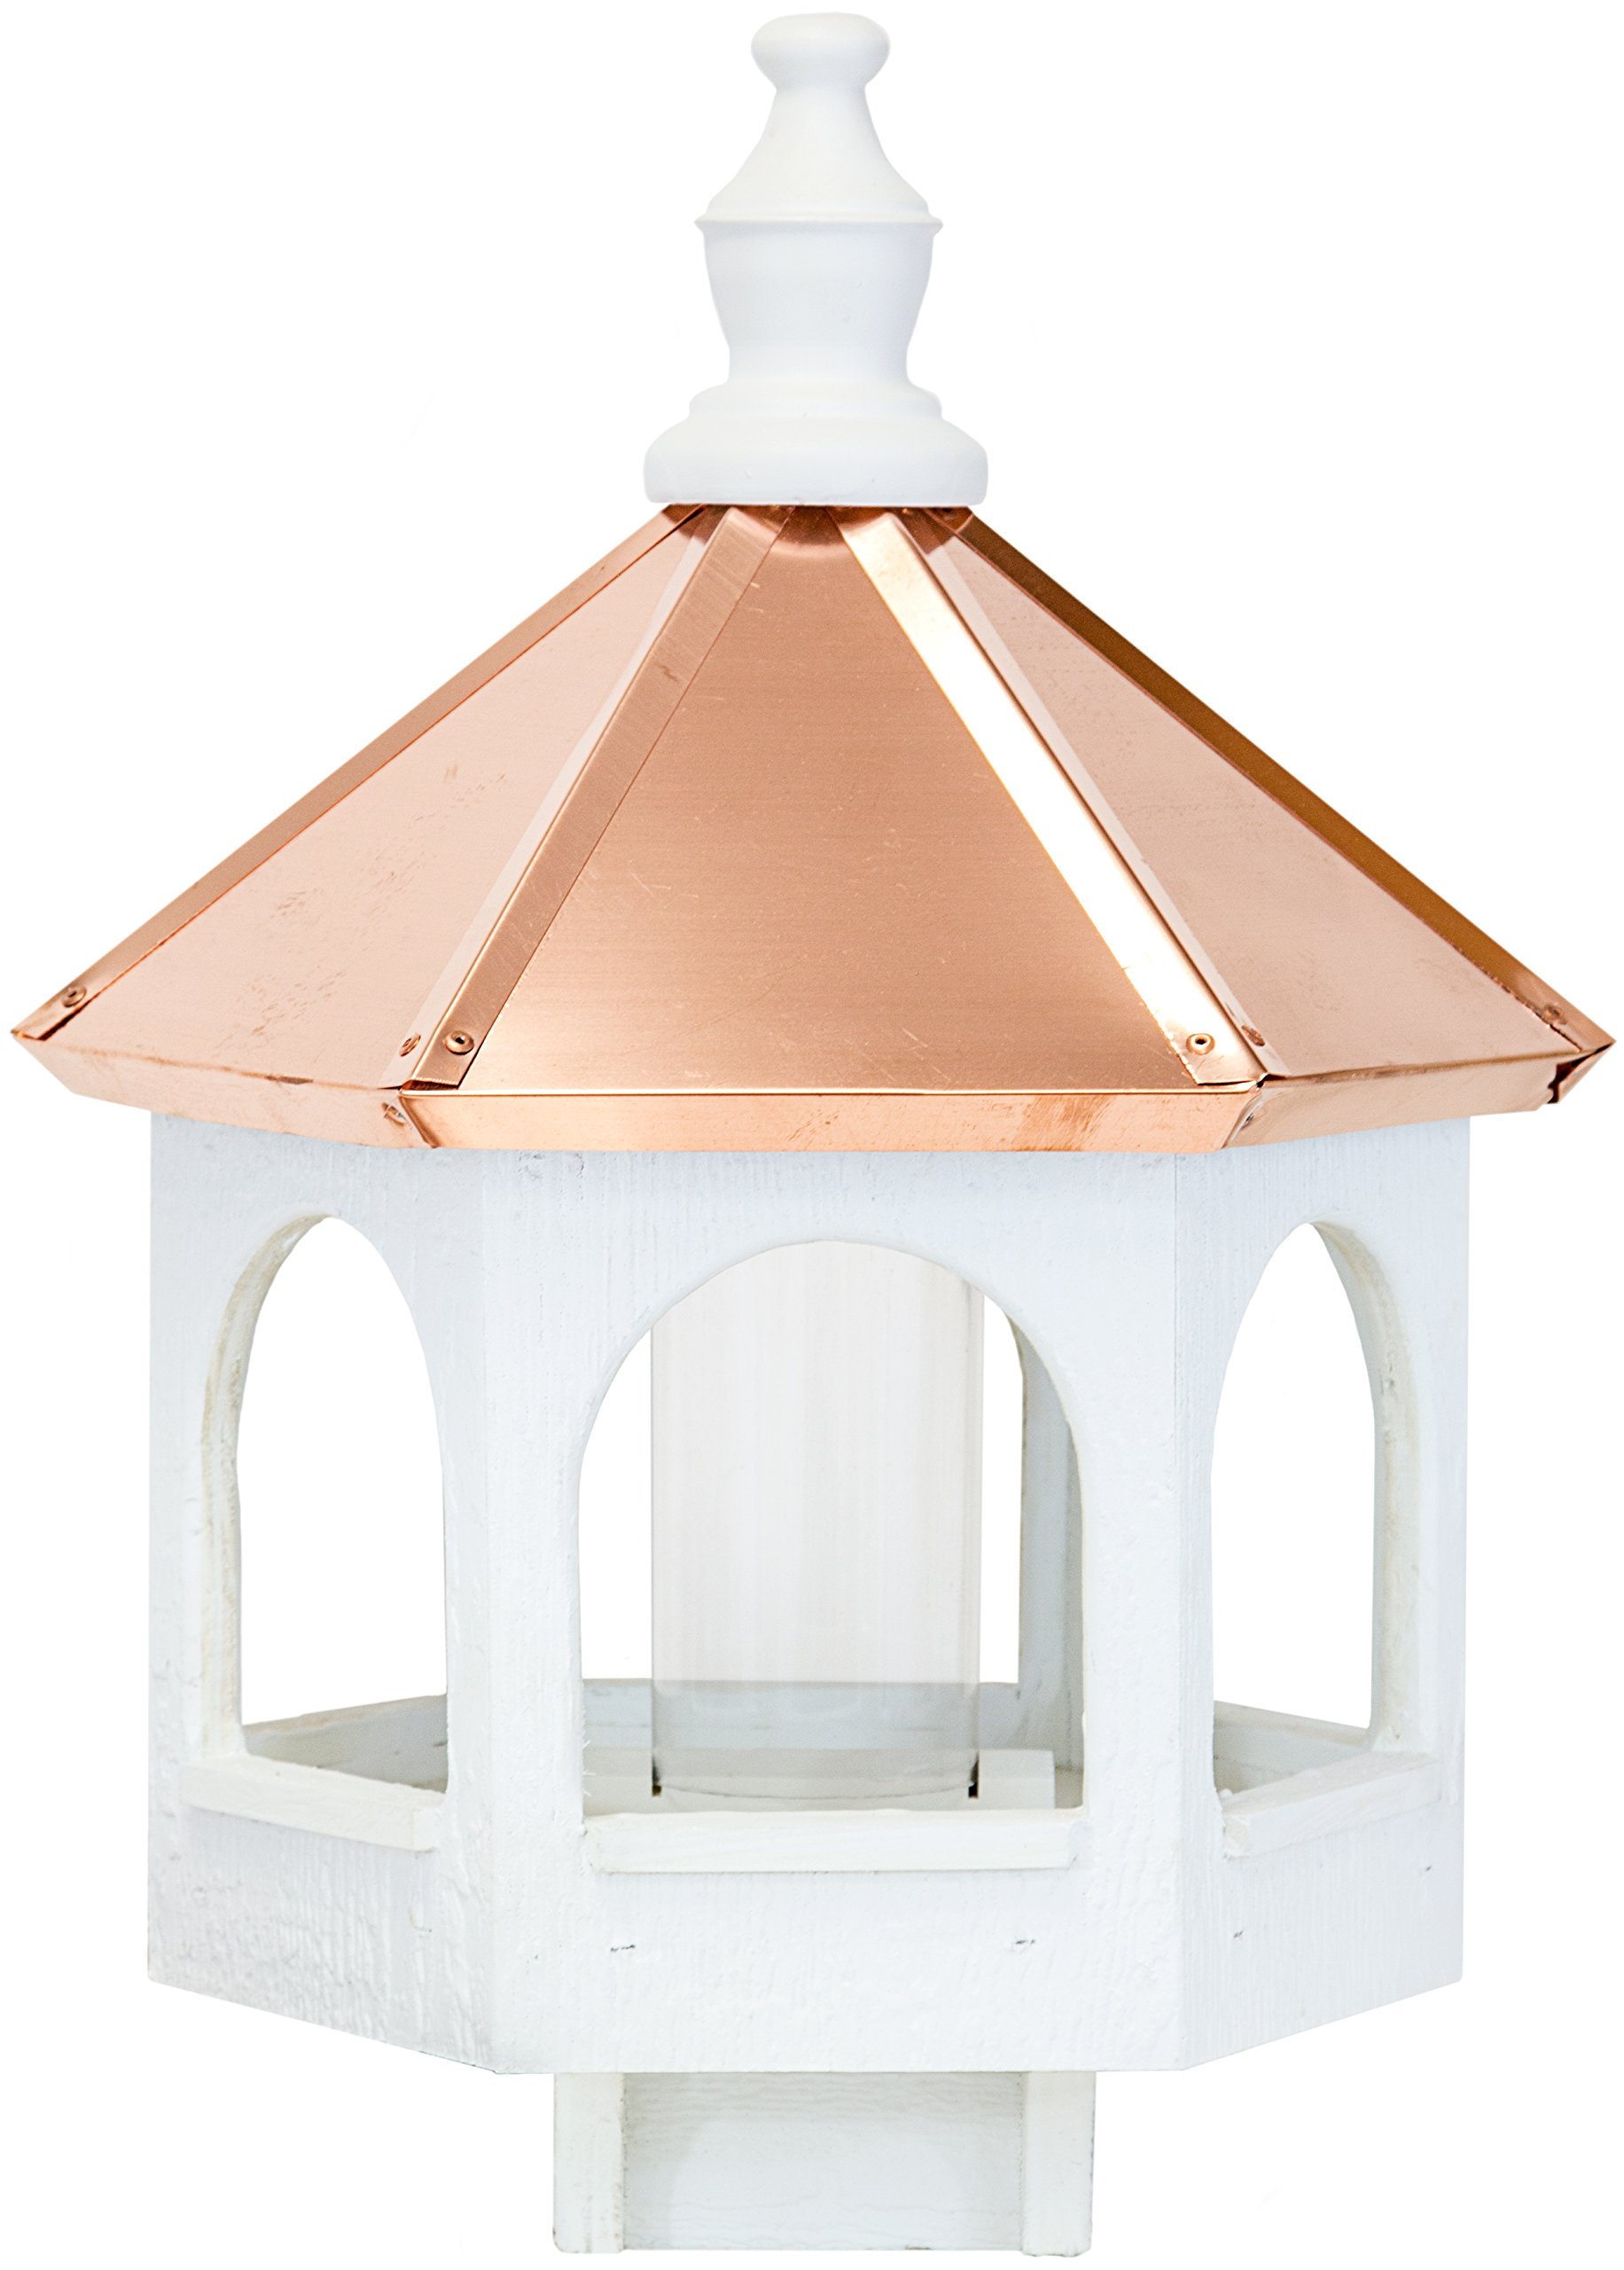 Amish 21'' Bird Feeder with Copper Roof, Handcrafted in the USA